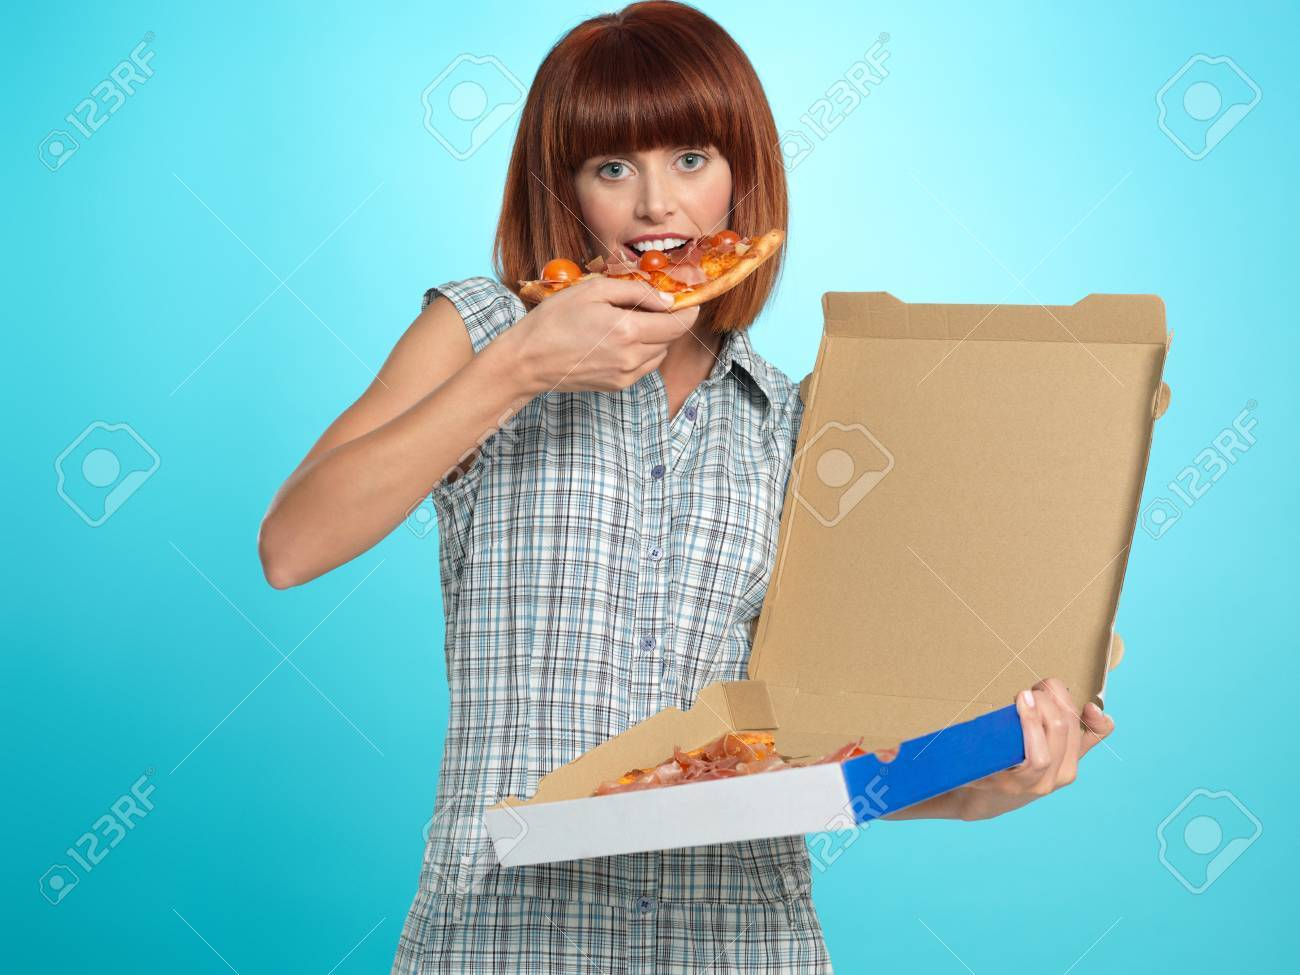 beautiful young woman, eating a pizza pie from the delivery box, smiling, on blue background Stock Photo - 13240299